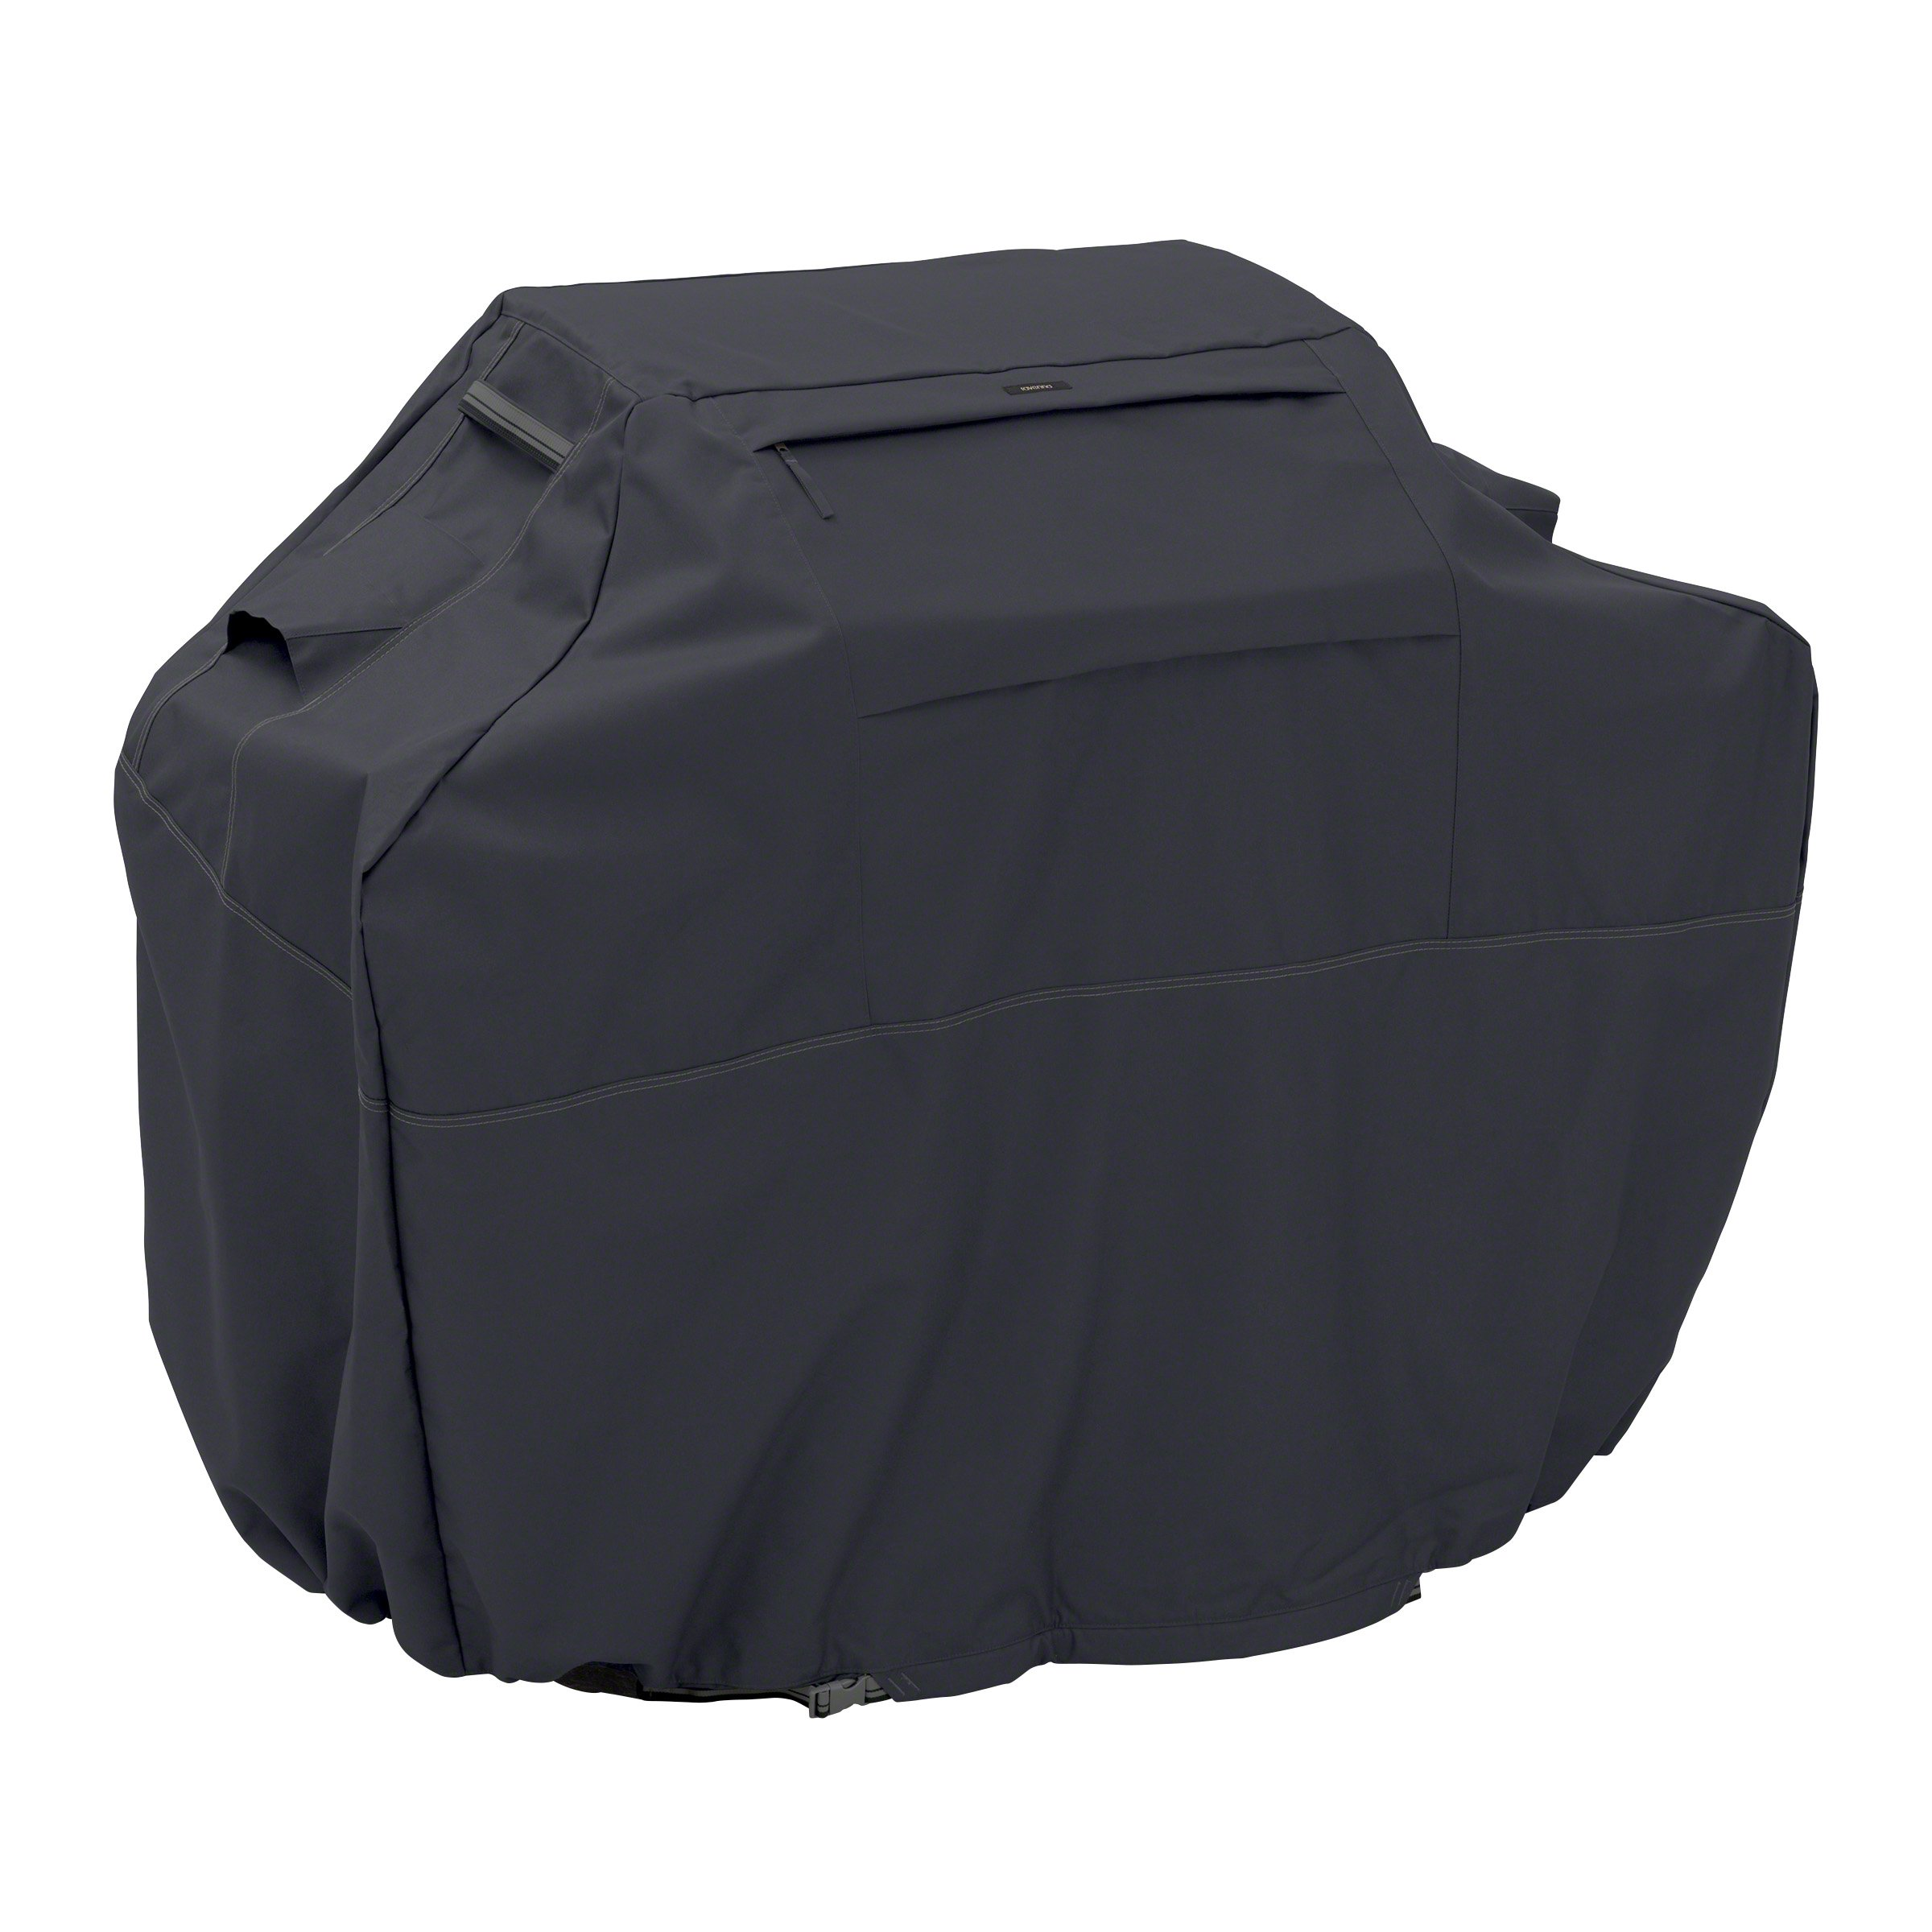 Classic Accessories Ravenna Grill Cover - Premium BBQ Cover with Reinforced Fade-Resistant Fabric, Large, 64-Inch